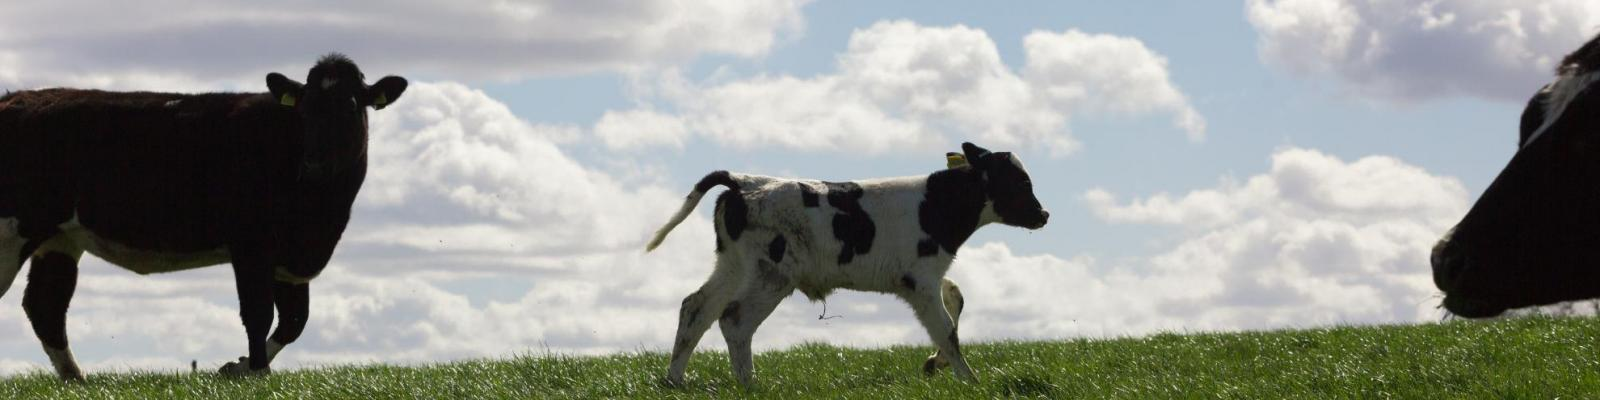 Cows and calf in field against blue sky and cloud